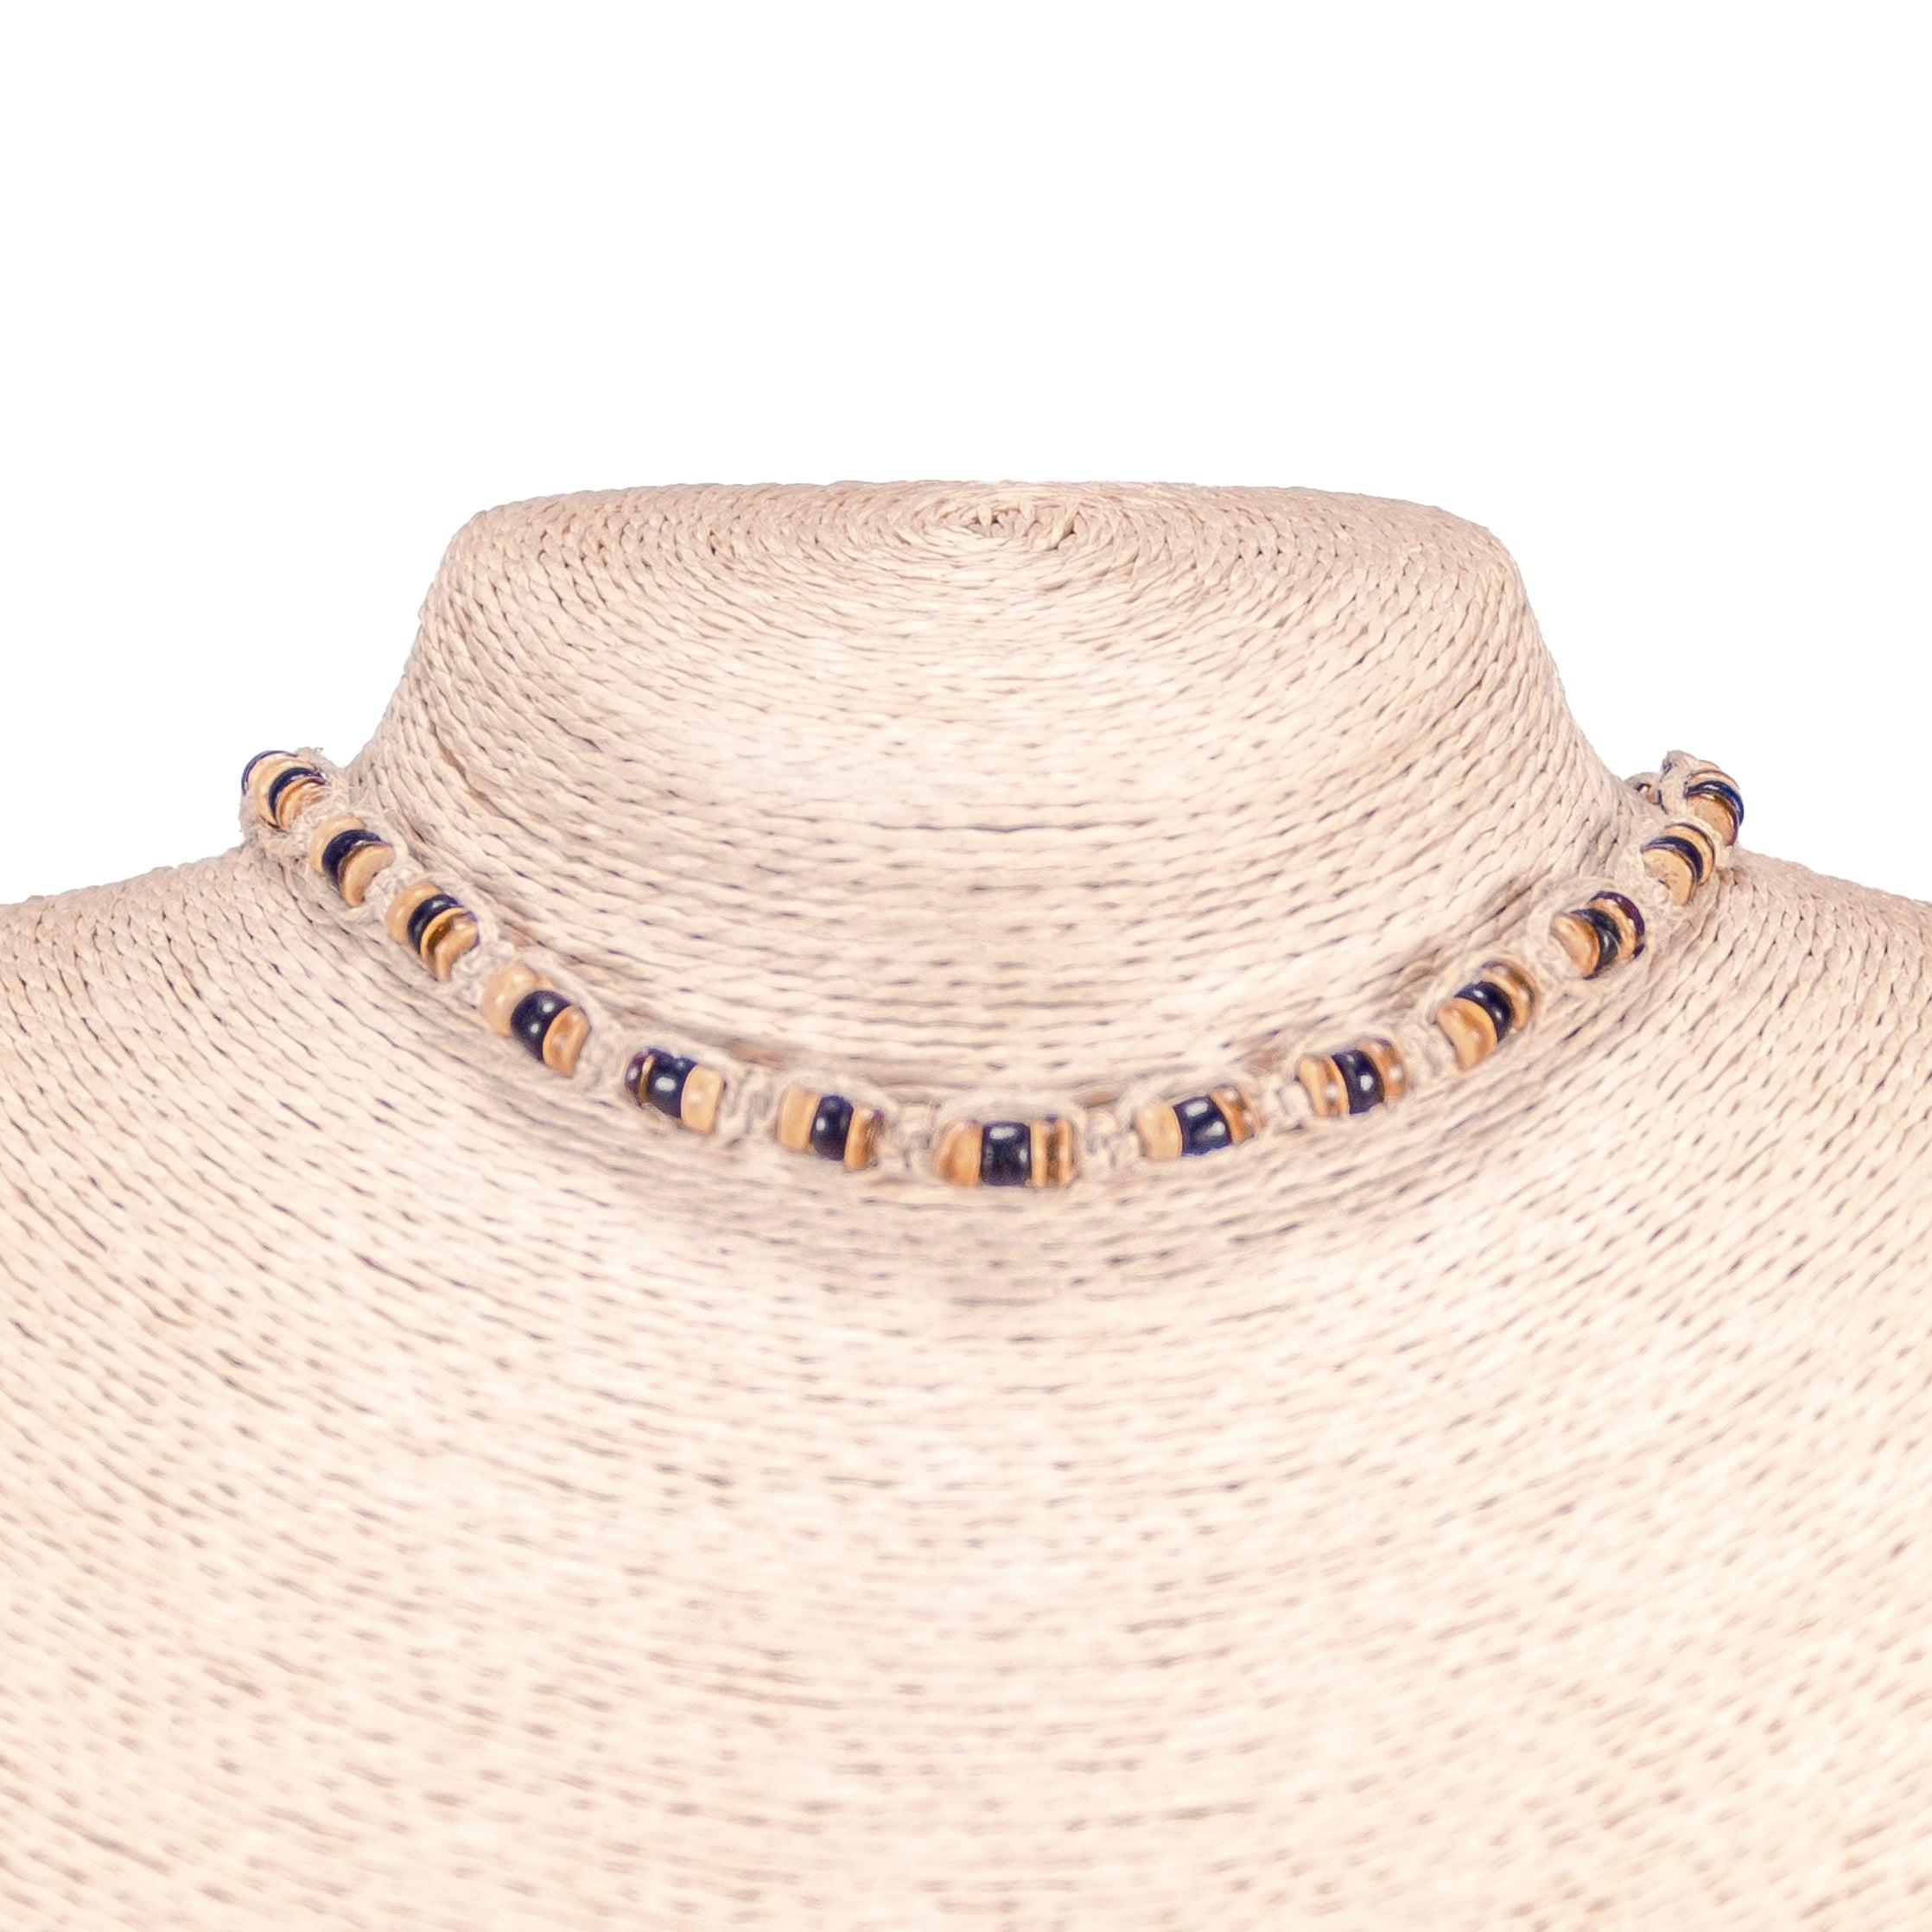 Tiger Brown and Black Coconut Beads on Hemp Choker Necklace